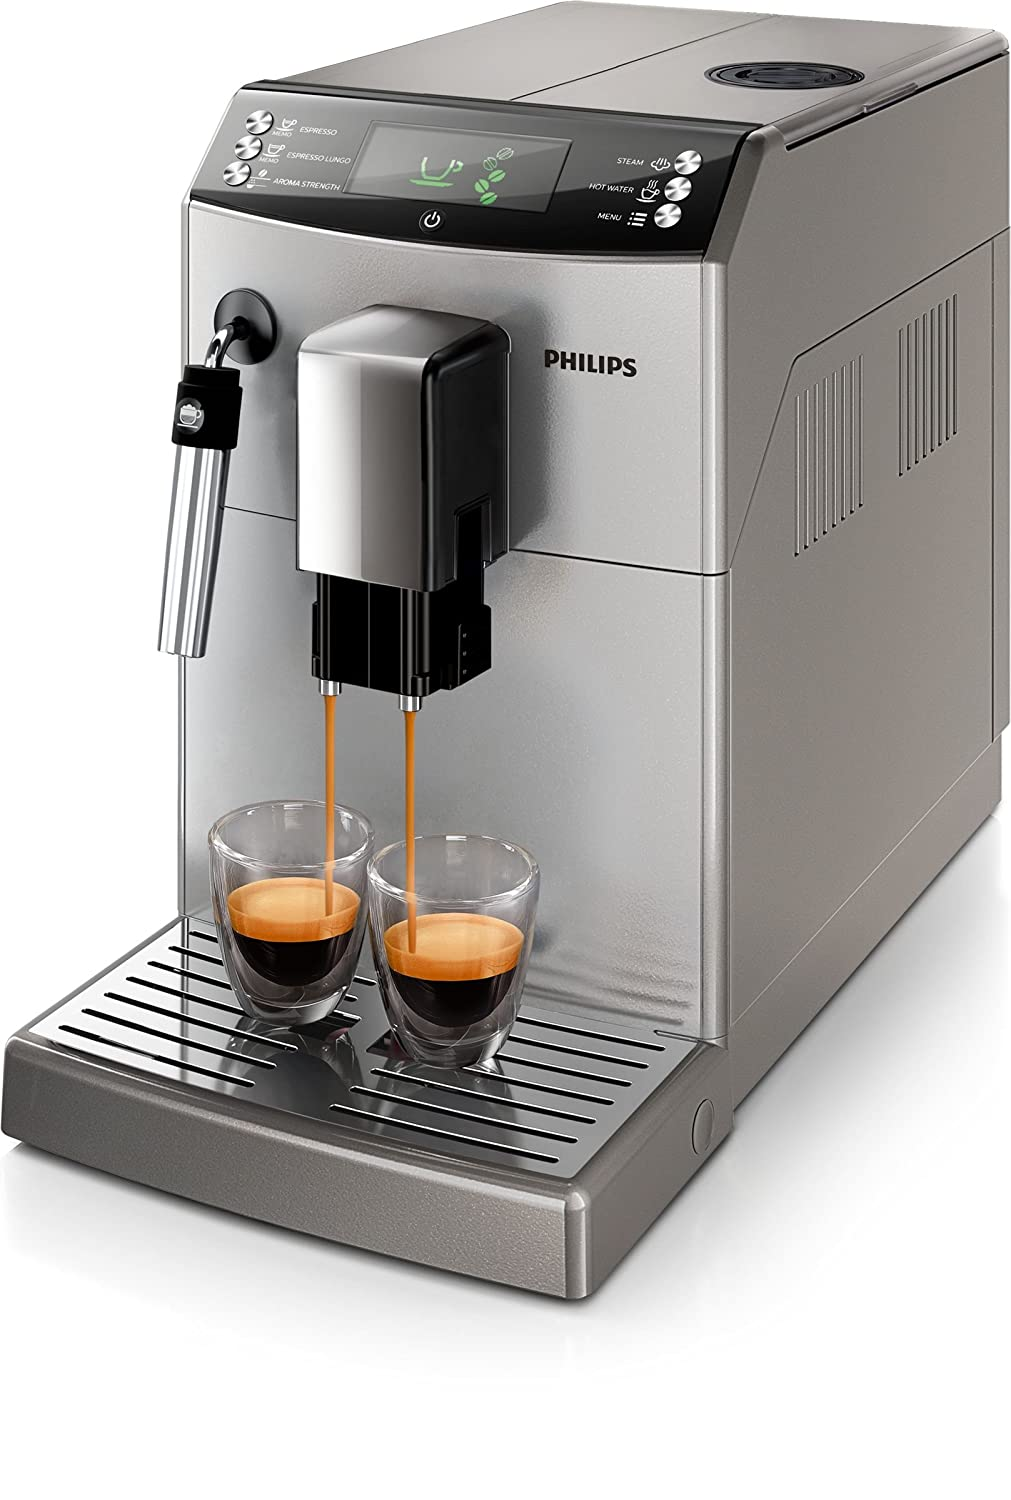 Philips 3100 series - Cafetera (Independiente, Máquina espresso, 1 ...